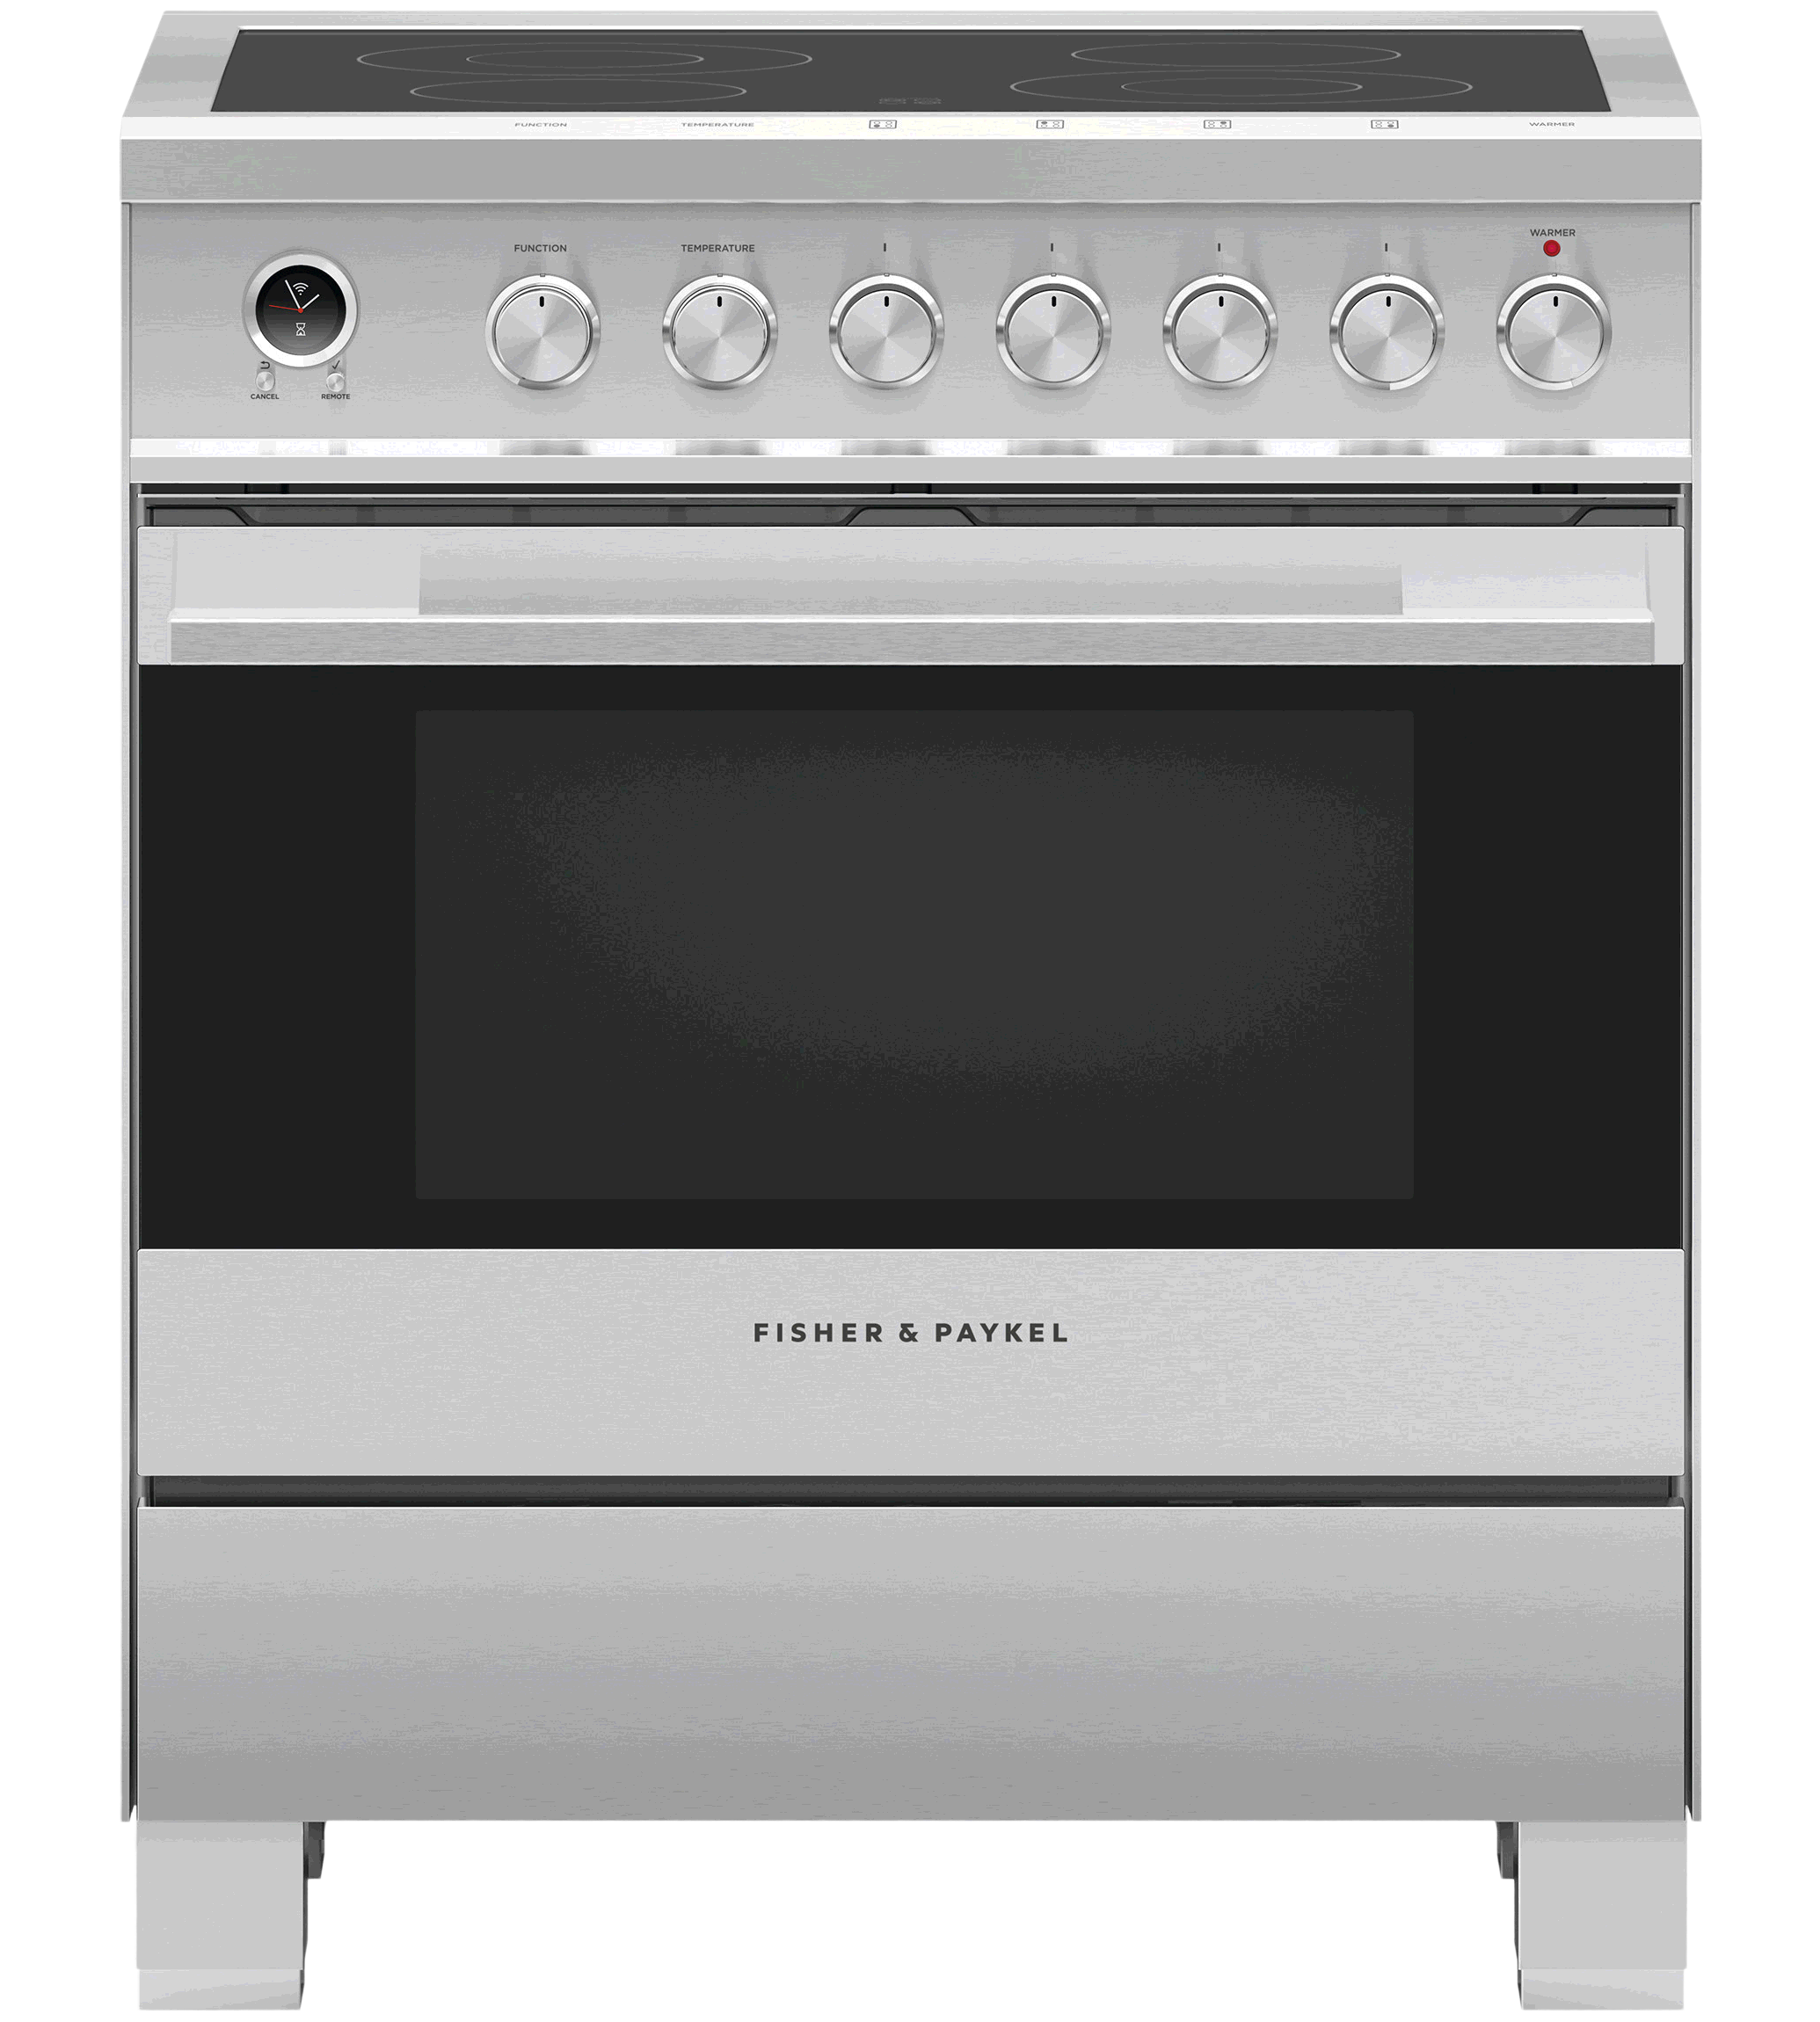 Fisher & Paykel Range in Stainless Steel color showcased by Corbeil Electro Store